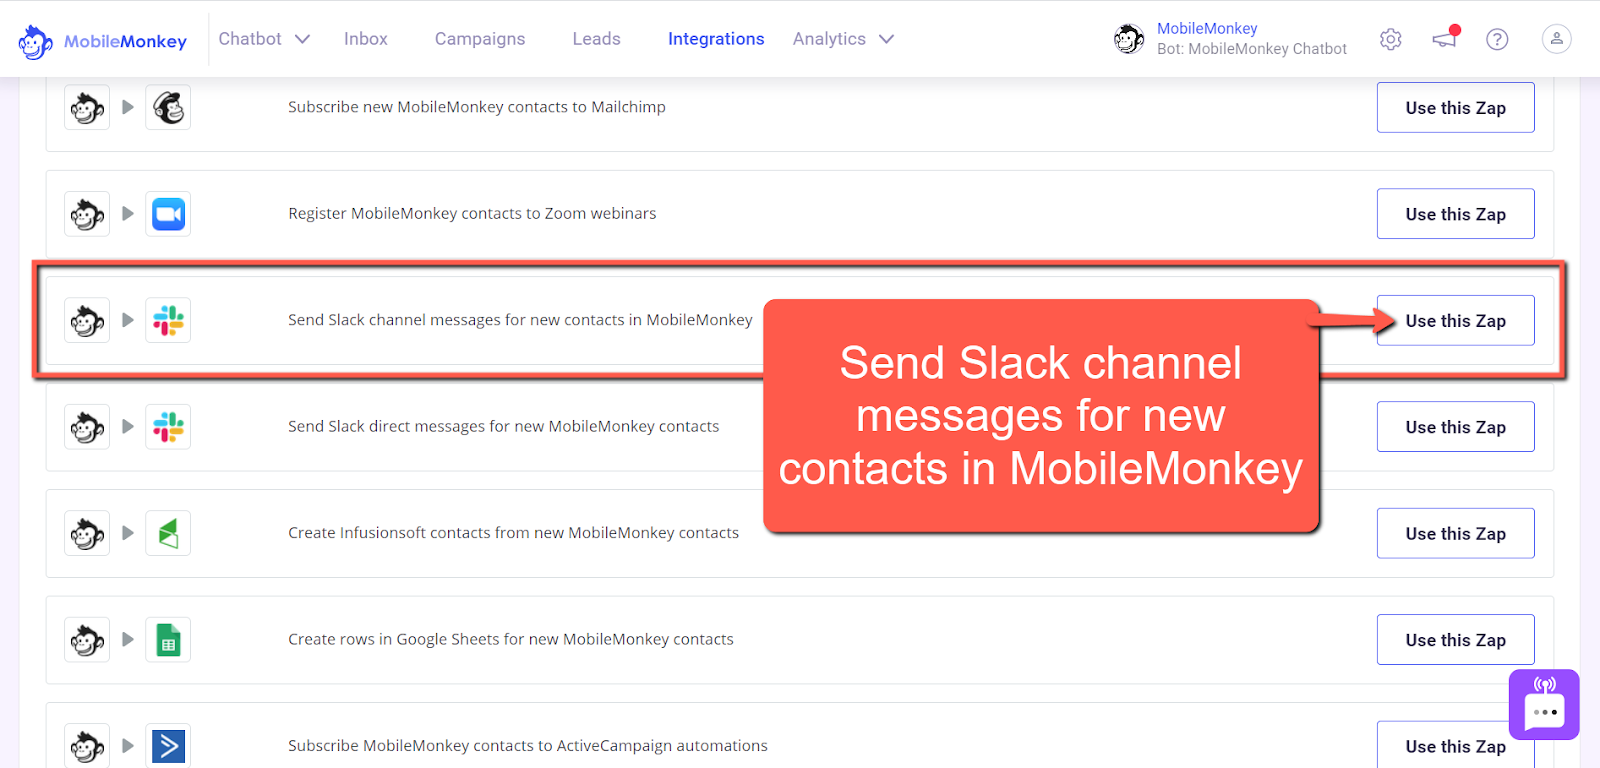 Send Slack channel messages for new contacts in MobileMonkey